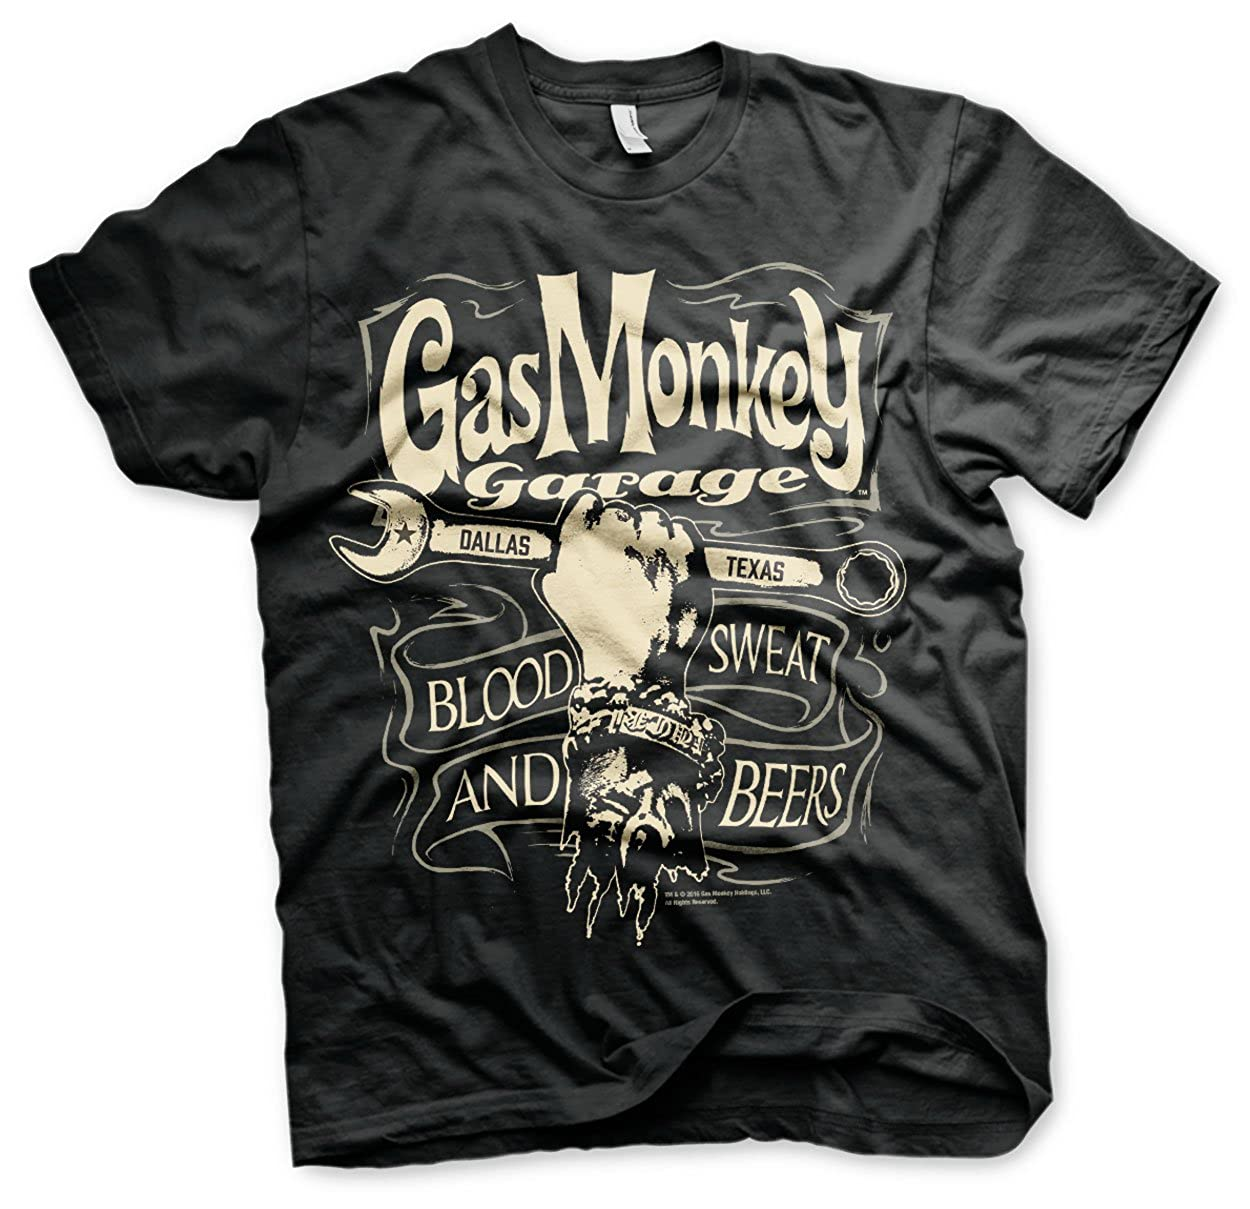 Officially Licensed Merchandise Gas Monkey Garage Wrench Label T-Shirt (Black)